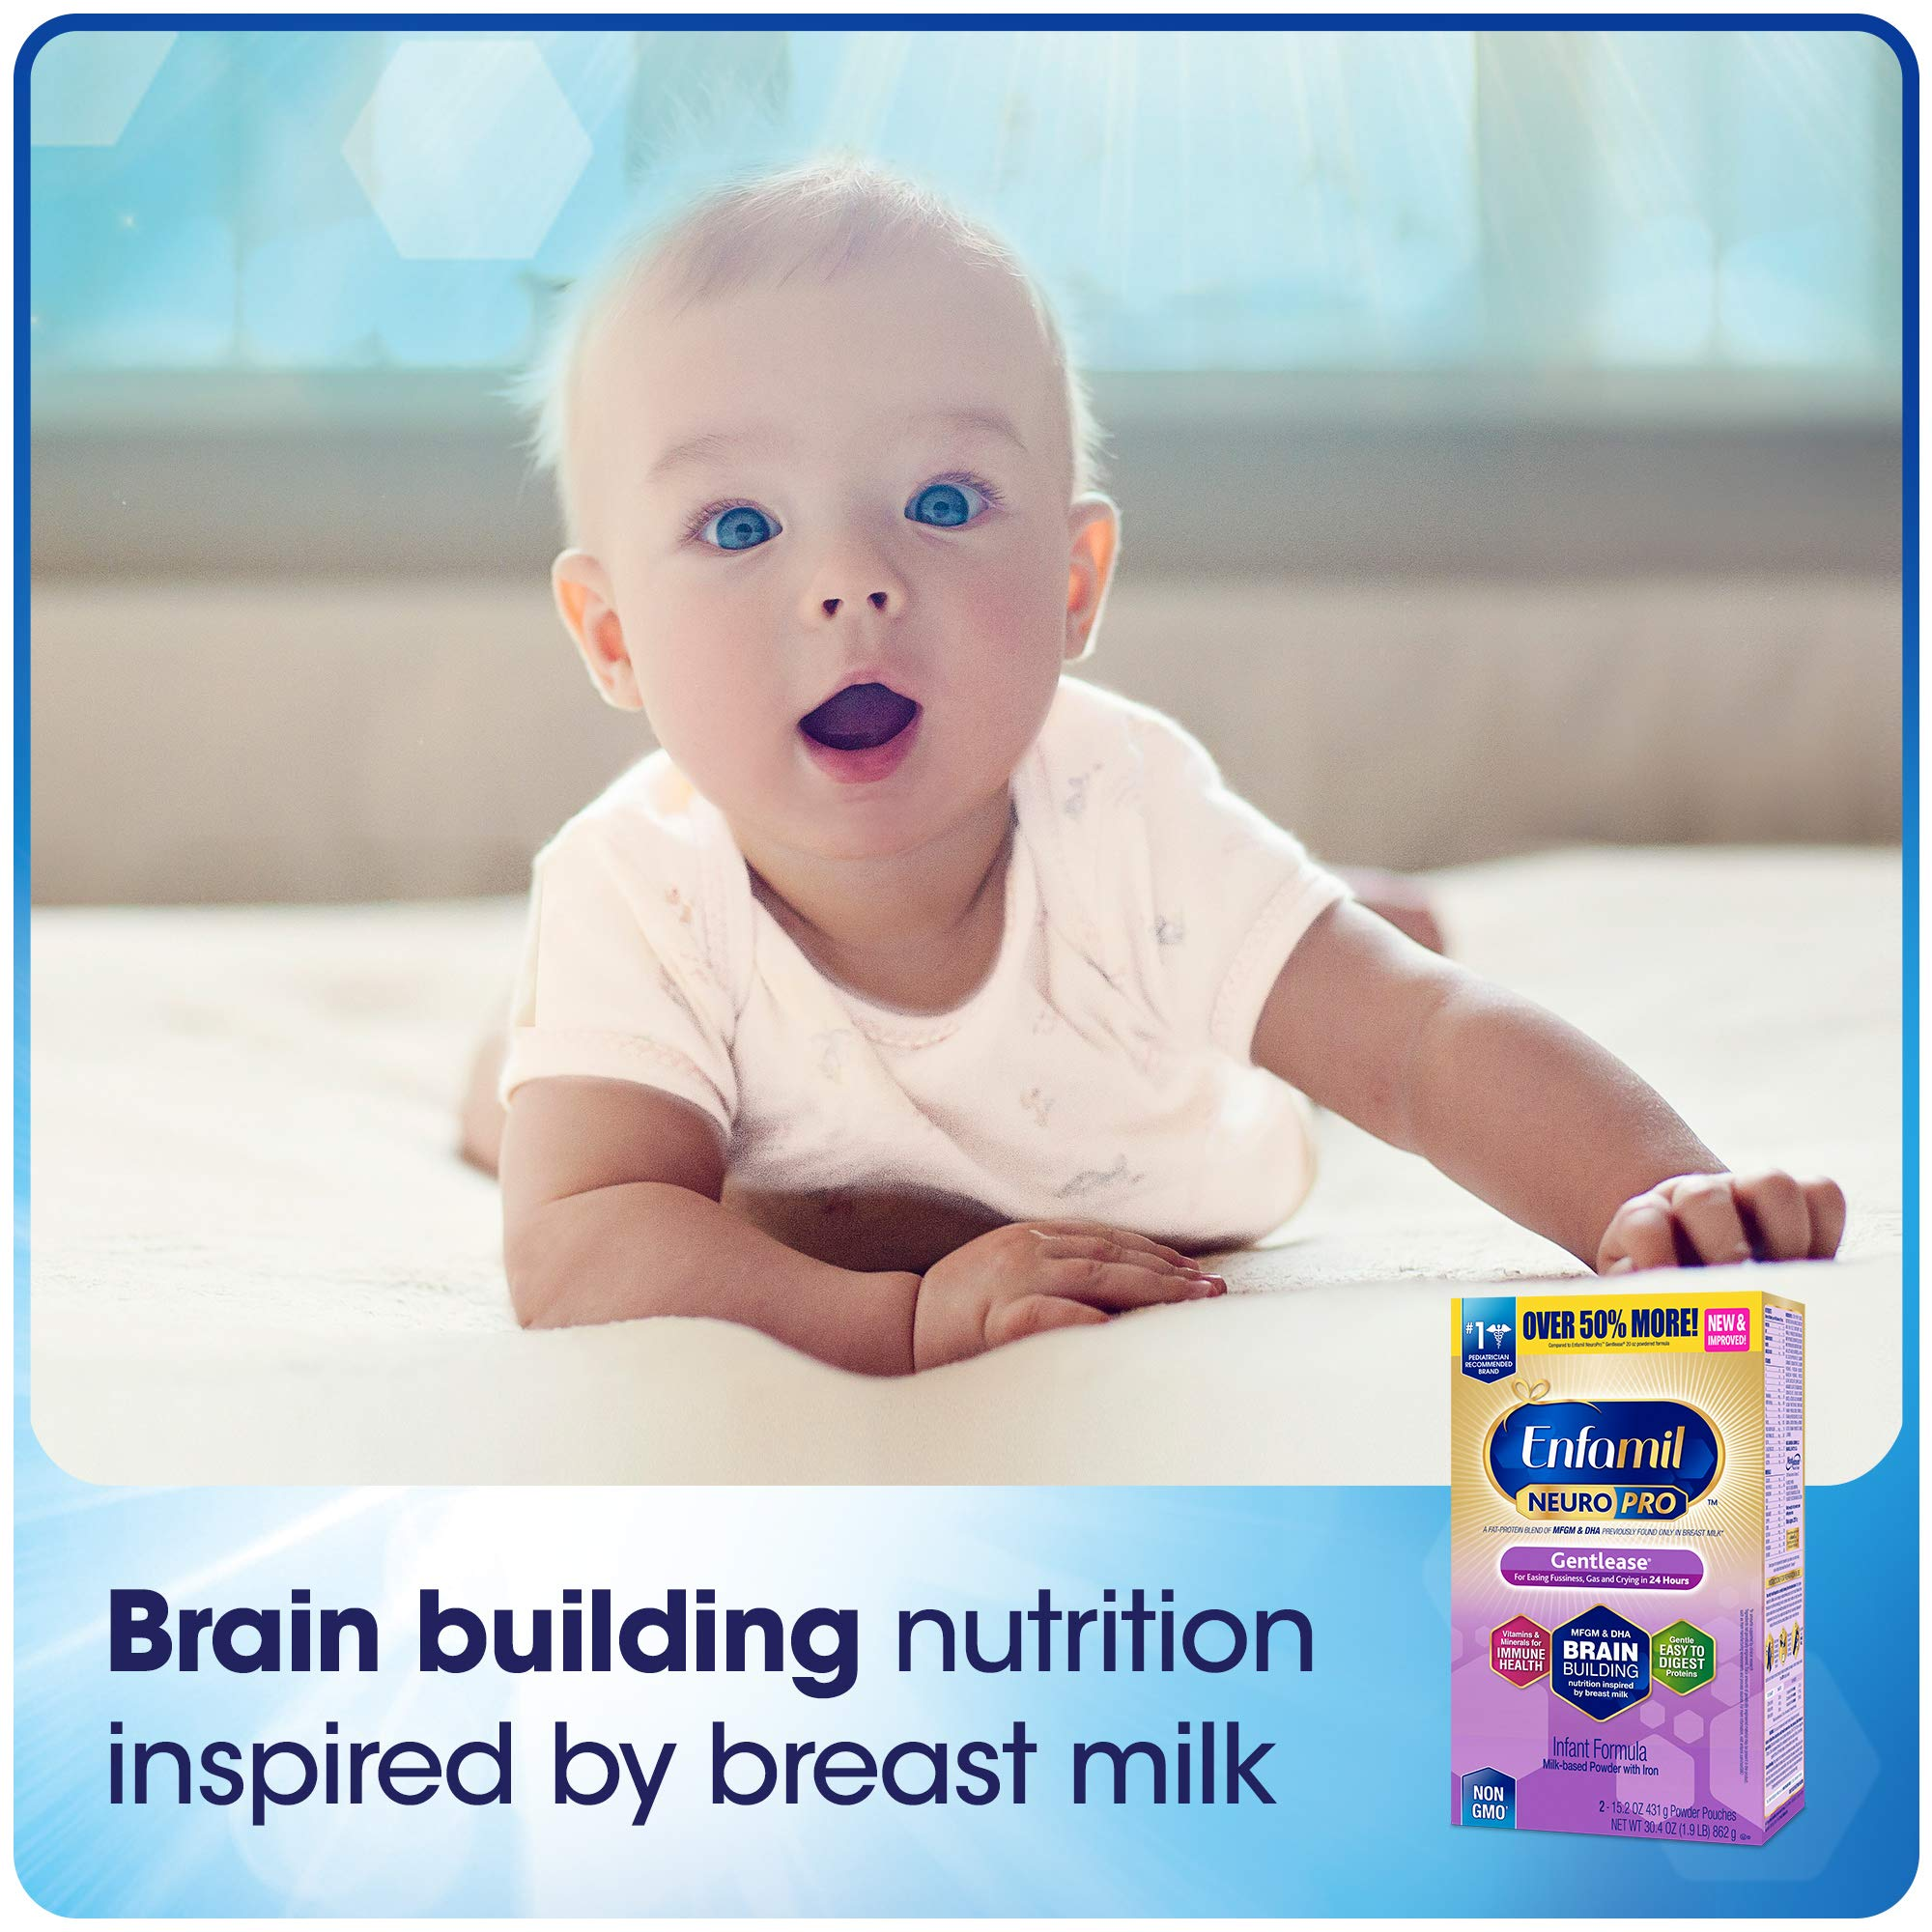 Enfamil NeuroPro Gentlease Infant Formula - Clinically Proven to reduce fussiness, gas, crying in 24 hours - Brain Building Nutrition Inspired by breast milk - Powder Refill Box, 30.4 oz (Pack of 4) by Enfamil (Image #5)